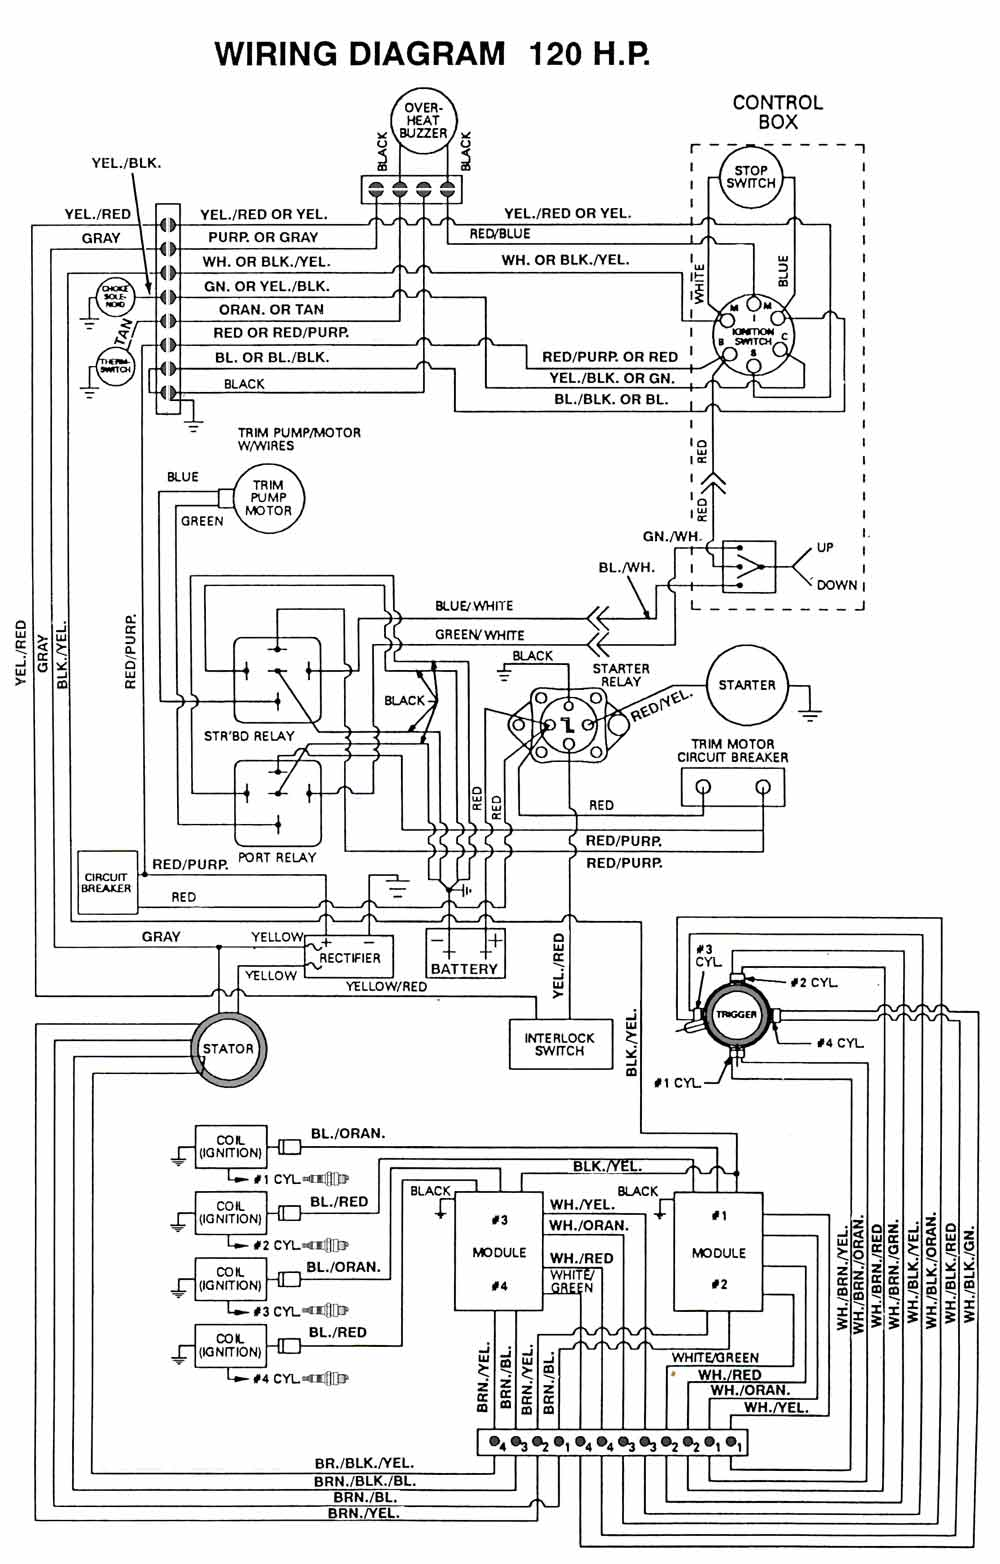 mercruiser thunderbolt ignition wiring diagram data flow for library management system level 0 starcraft boat all fiberform electrical best trailer lights 120hp thru91b eng mastertech